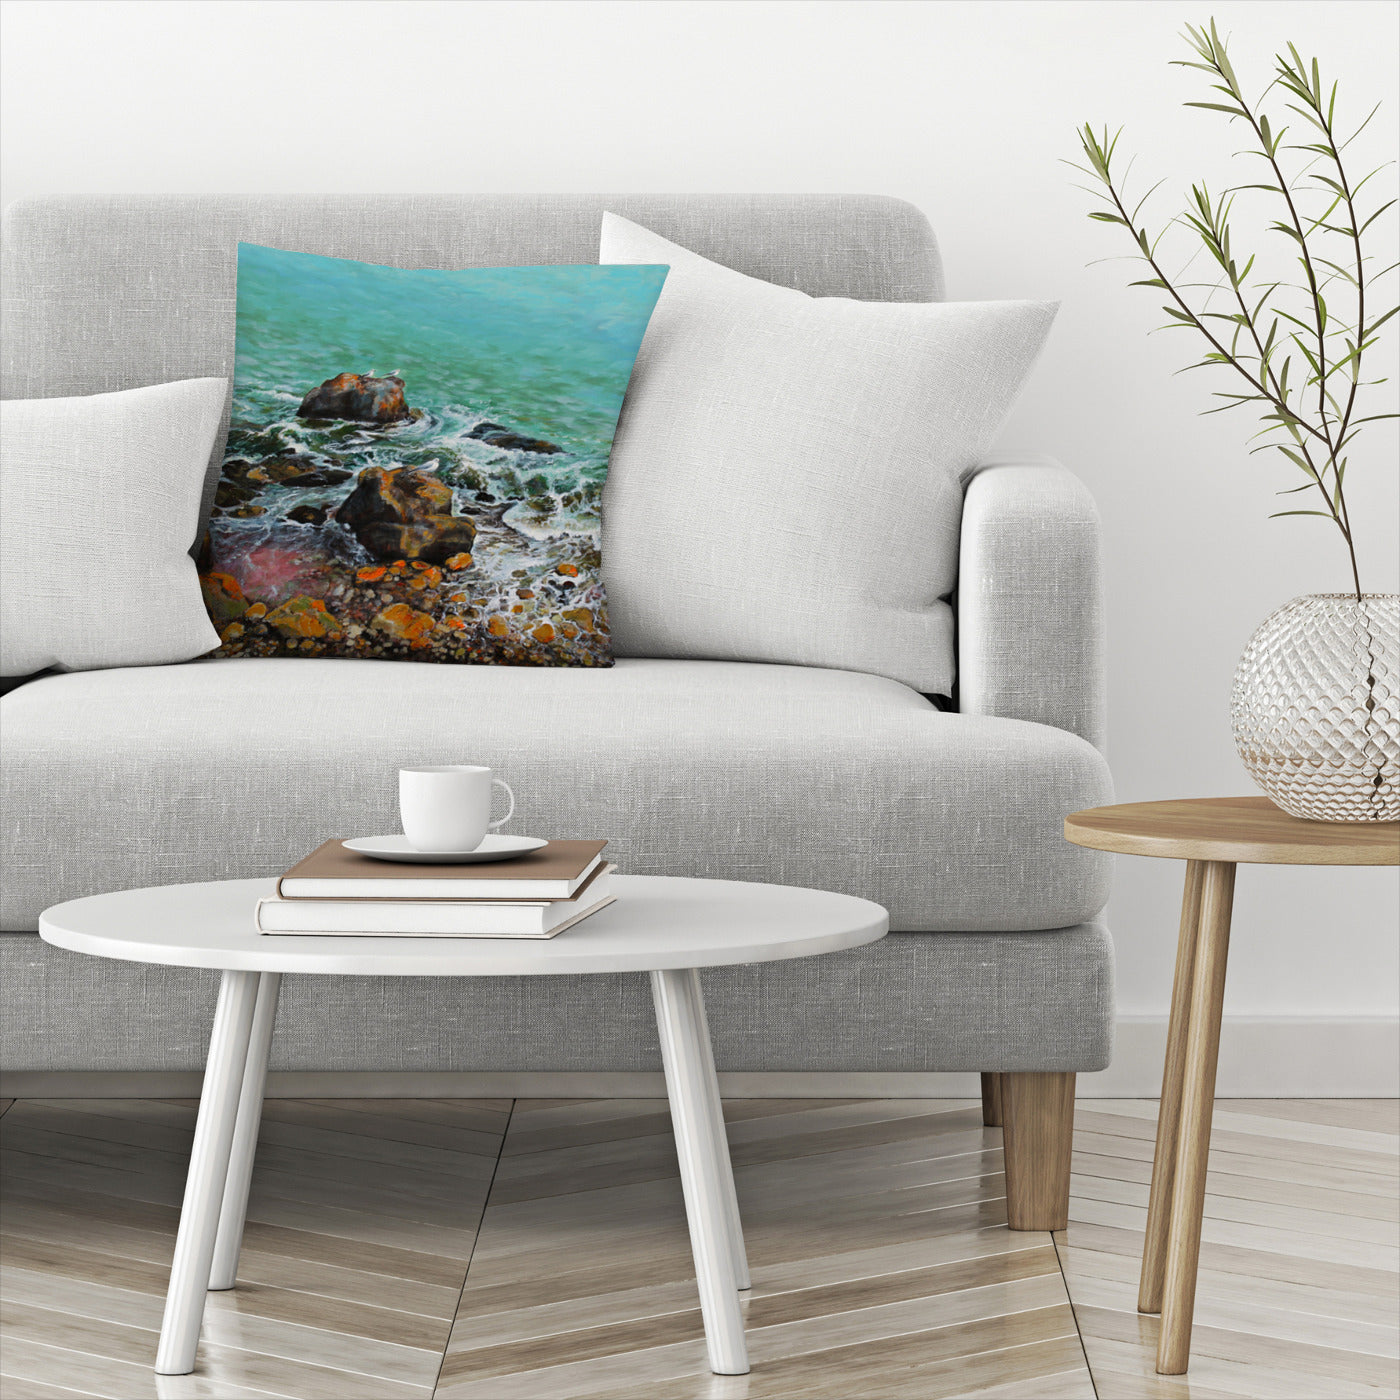 Seagulls On The Rocks by Sandra Francis Decorative Pillow - Decorative Pillow - Americanflat